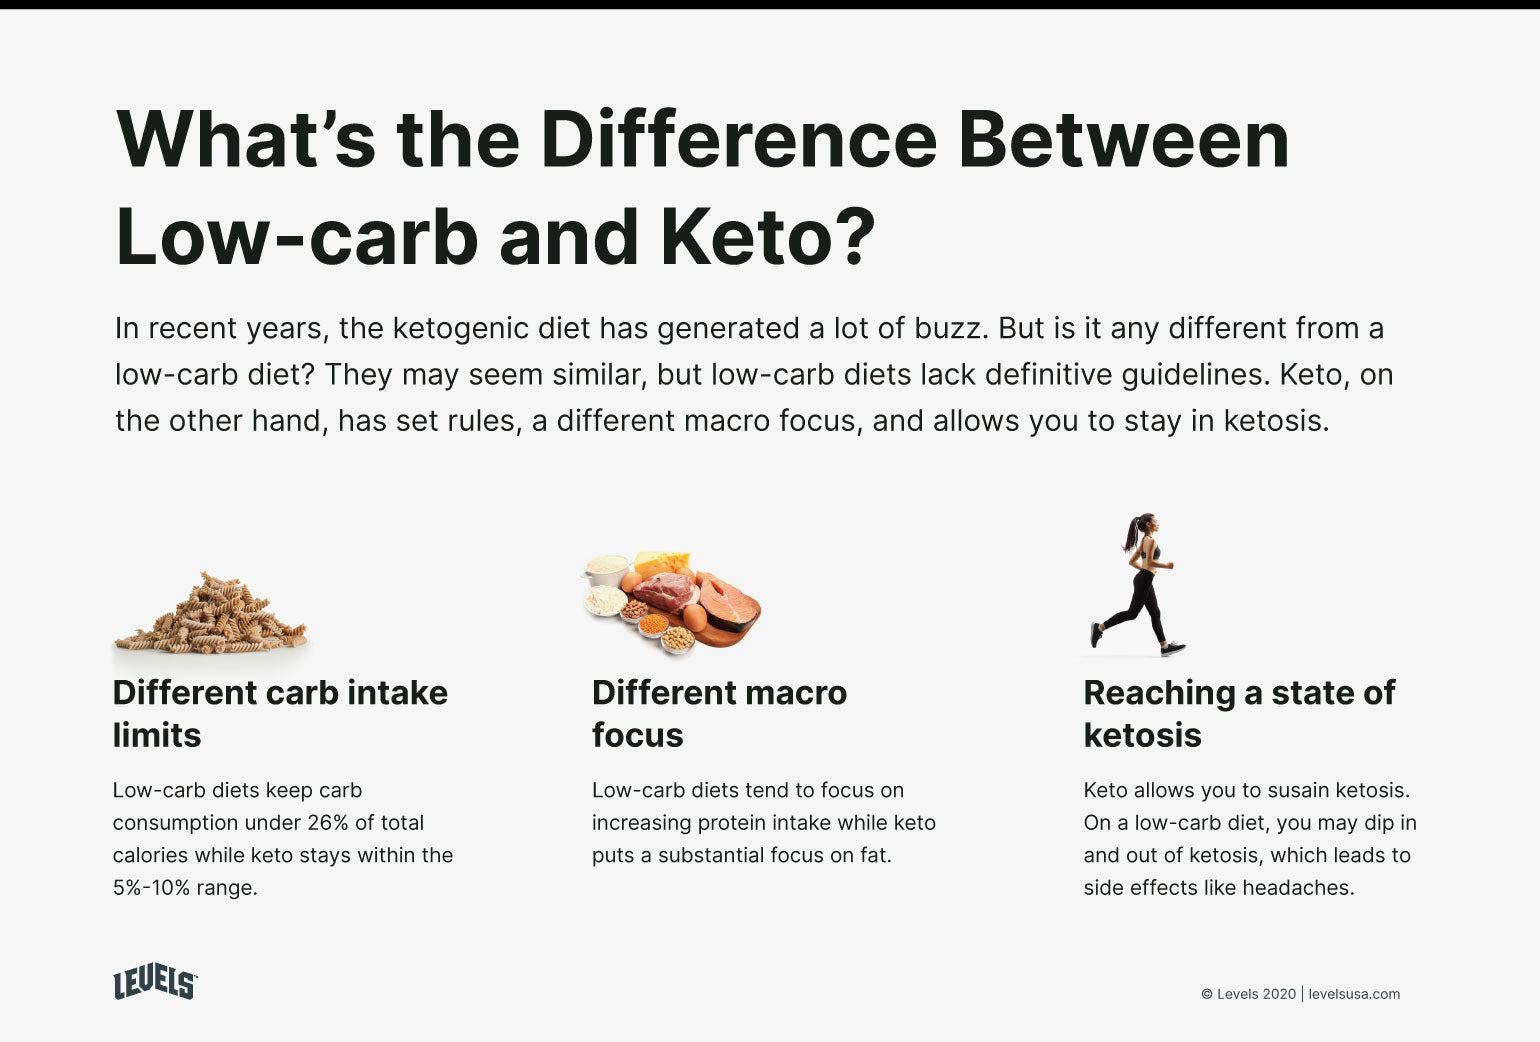 Differences Between Low-cab and Keto - Infographic